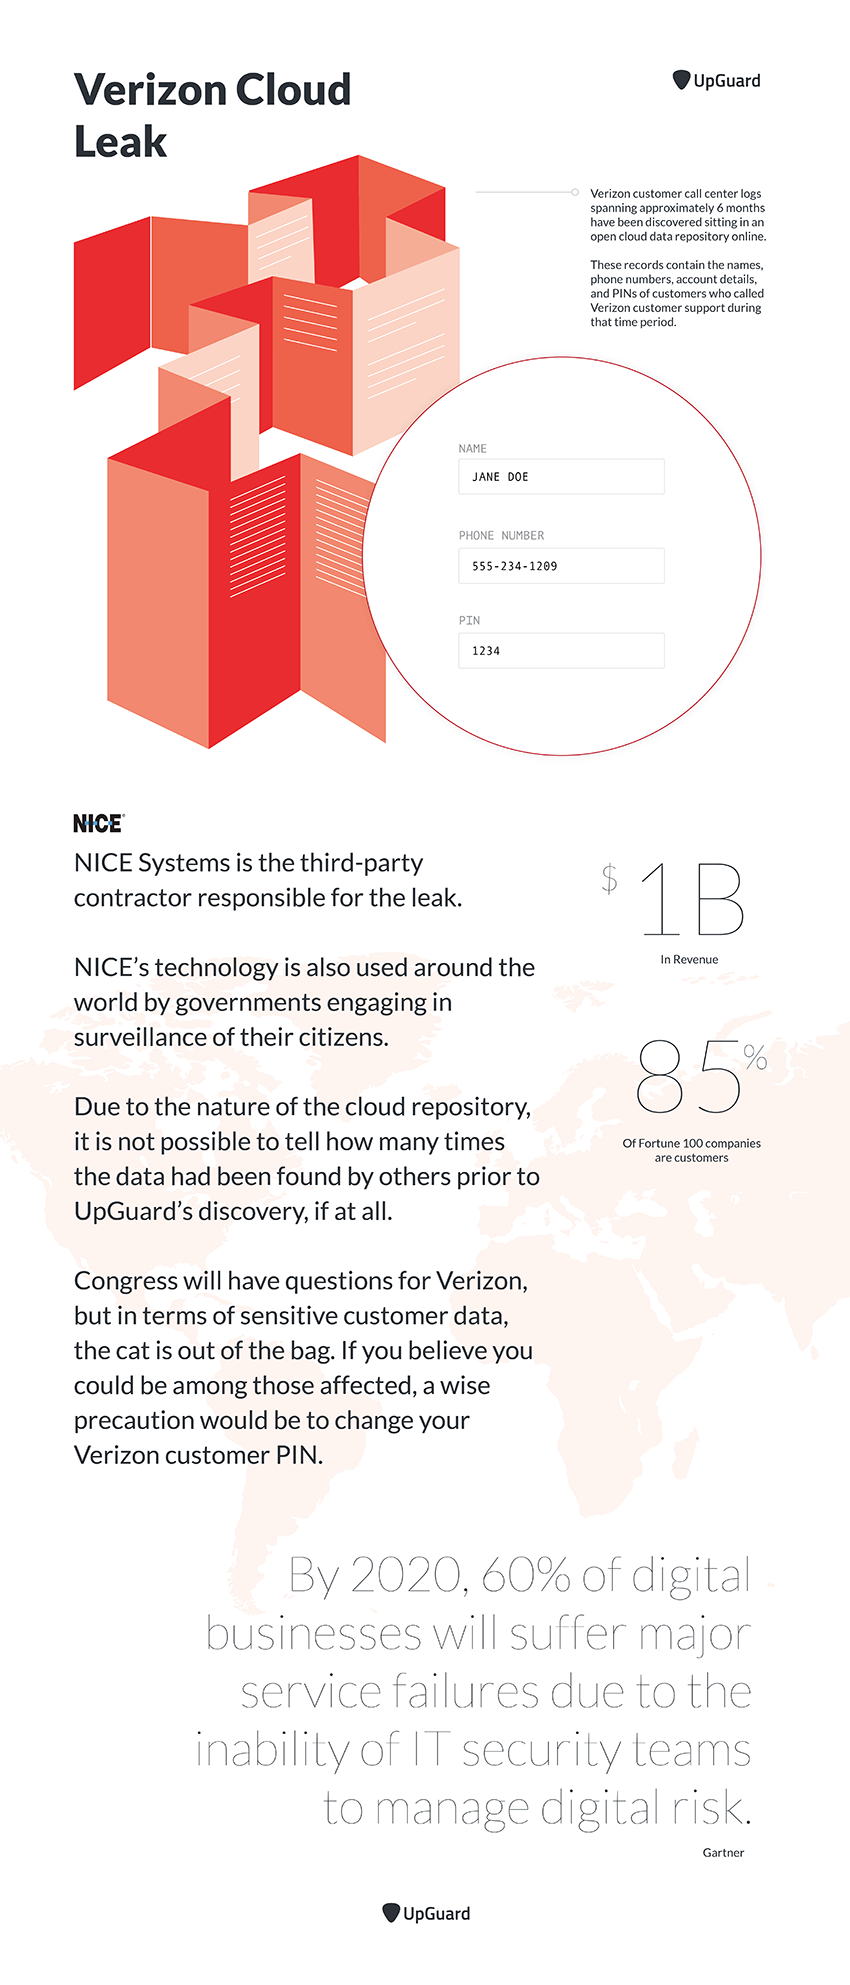 Verizon Cloud Leak Infographic